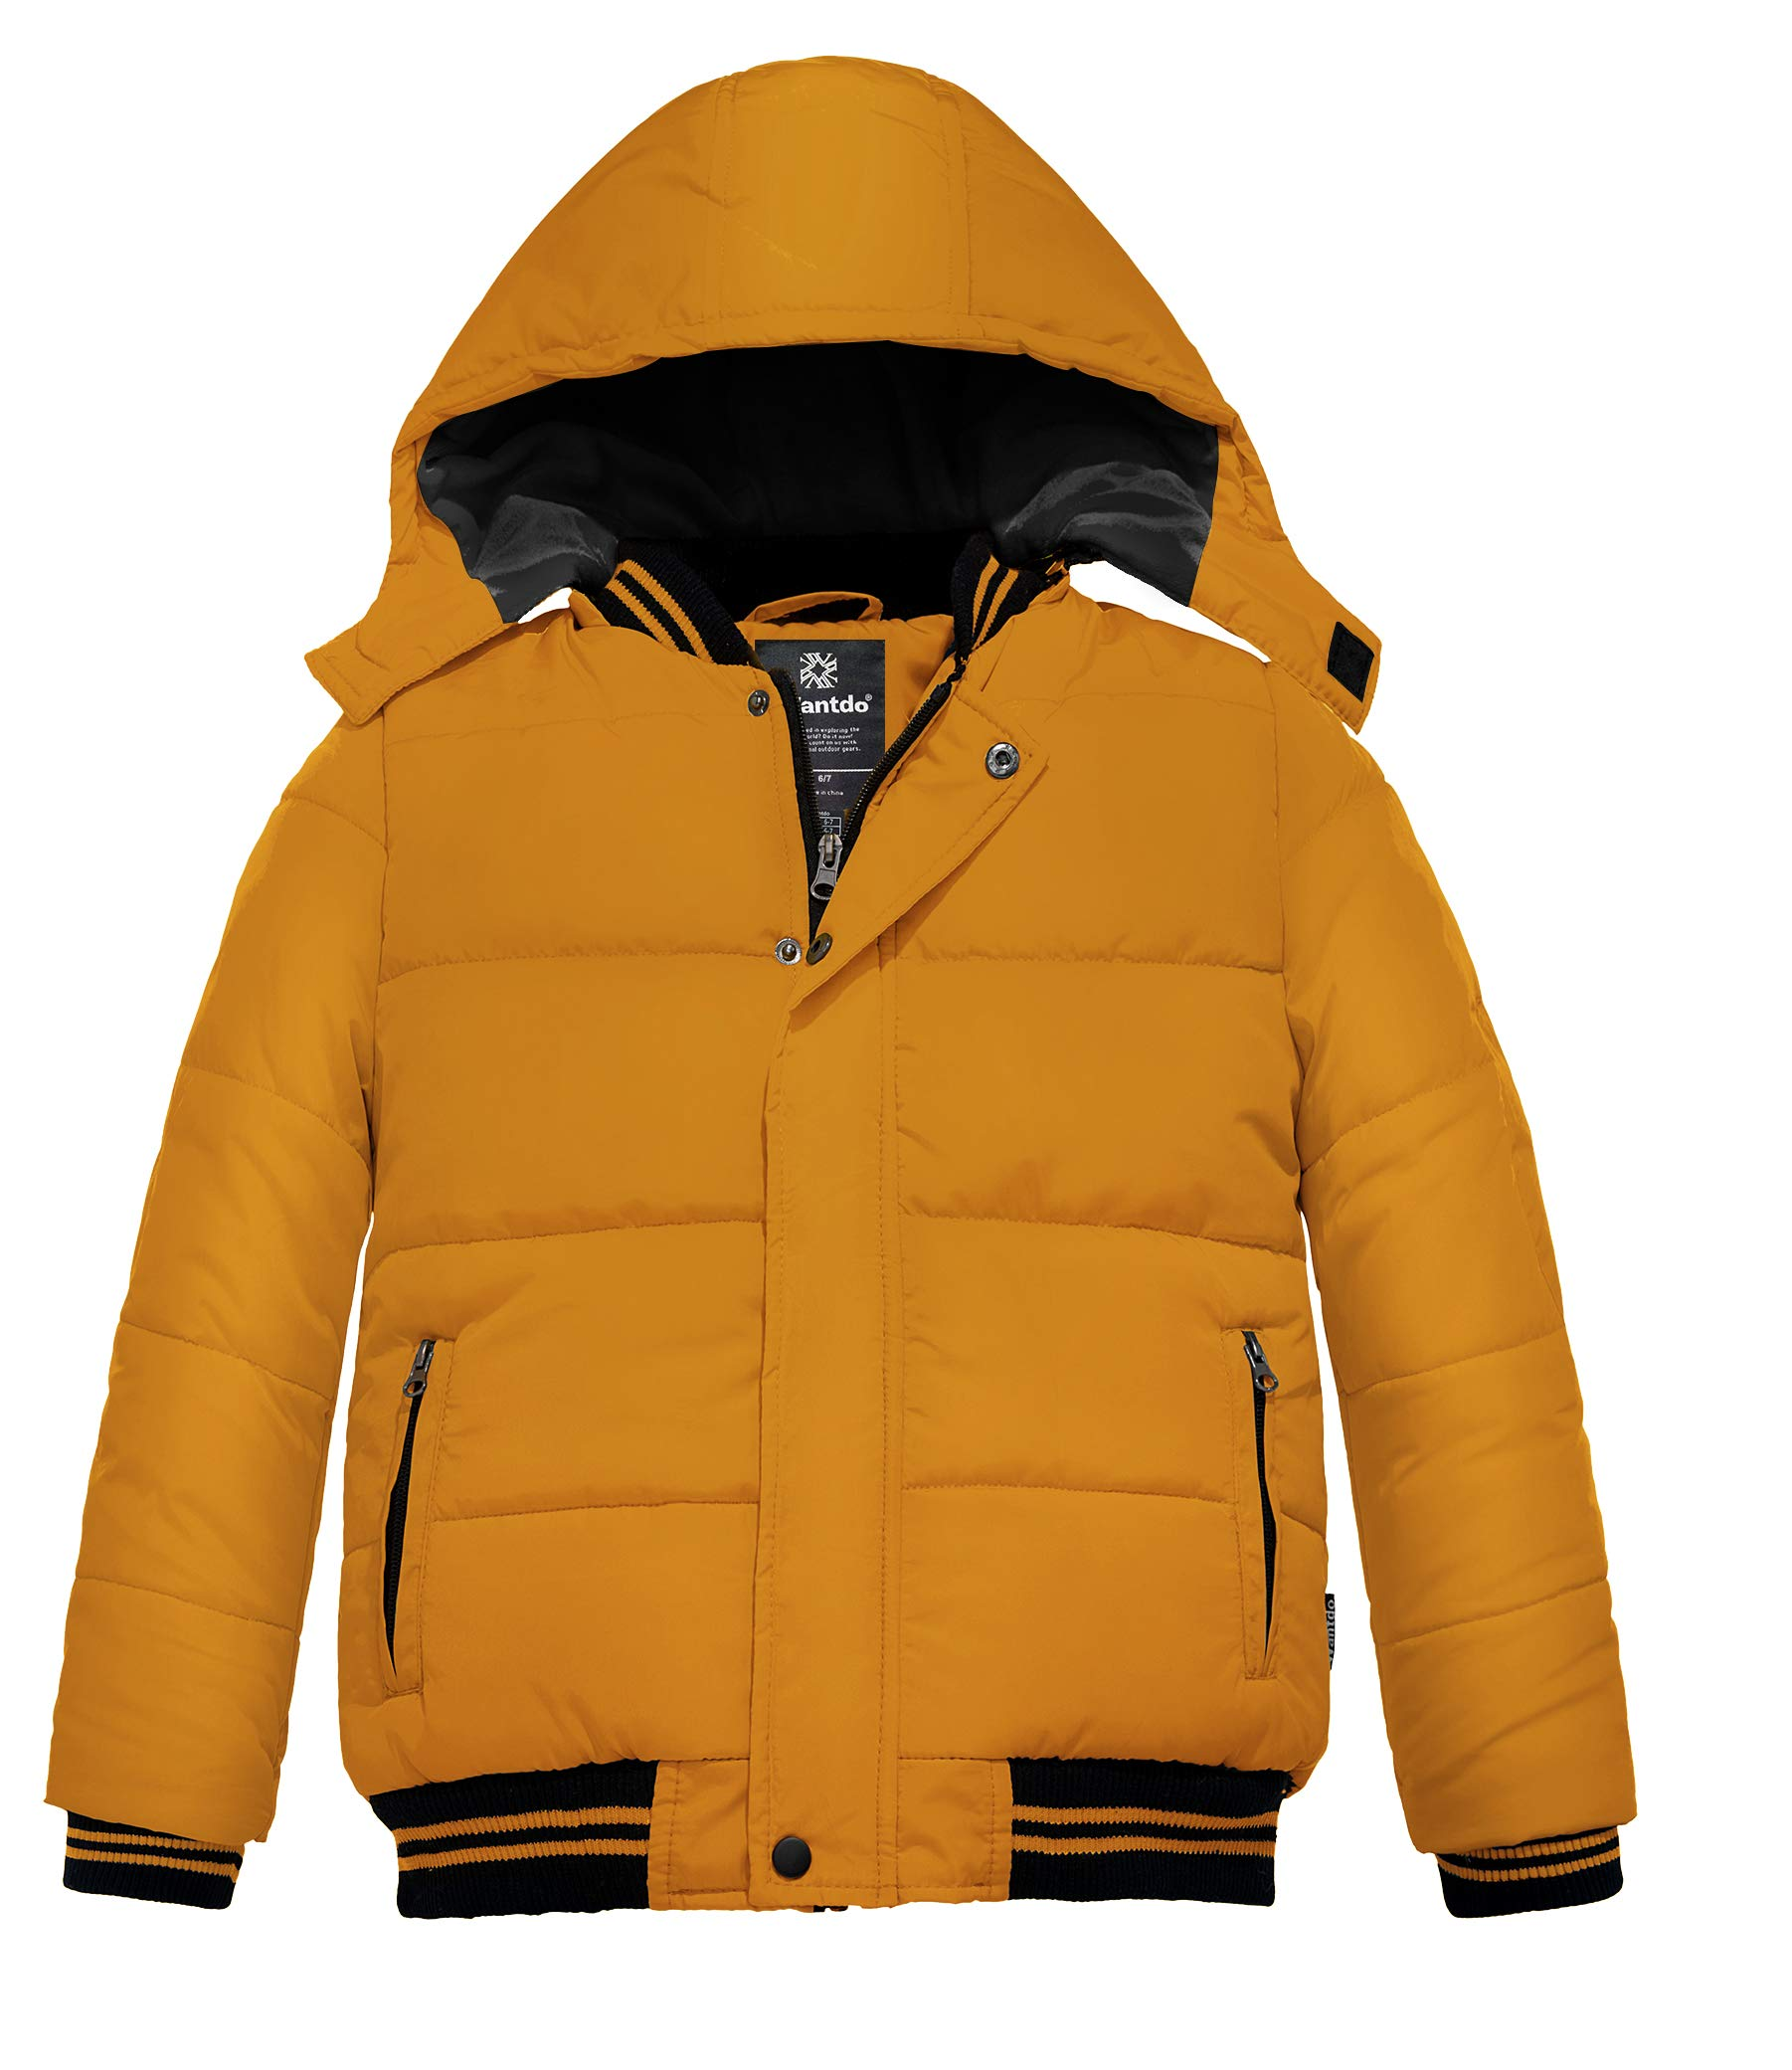 Wantdo Boy's Warm Winter Coat Removable Hood Windproof Puffer Jacket Ginger 8